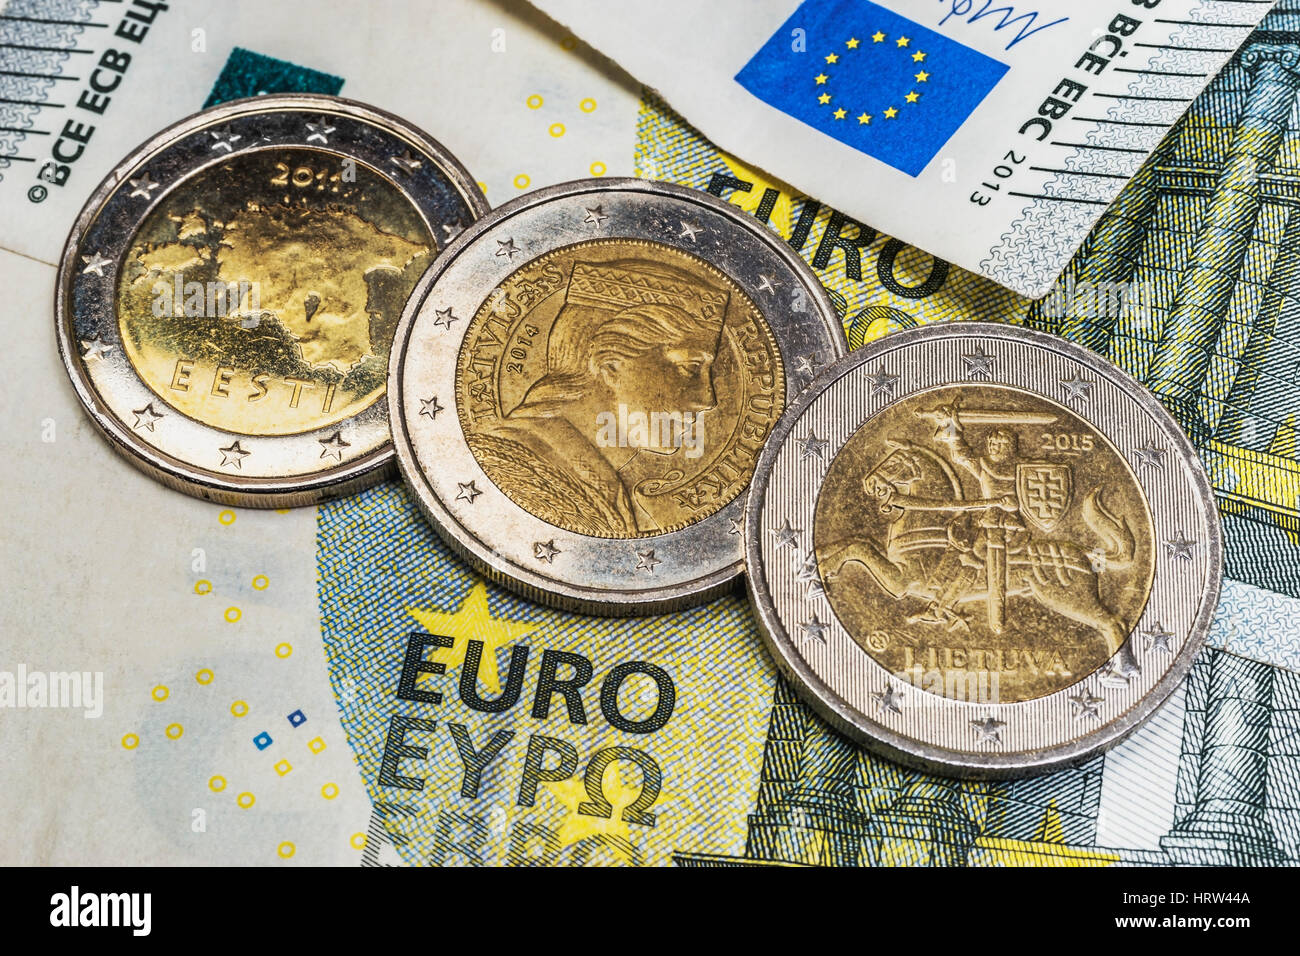 On a 5 euro banknote are the 2 euro coins of the Baltic States, Estonia, Latvia and Lithuania - Stock Image